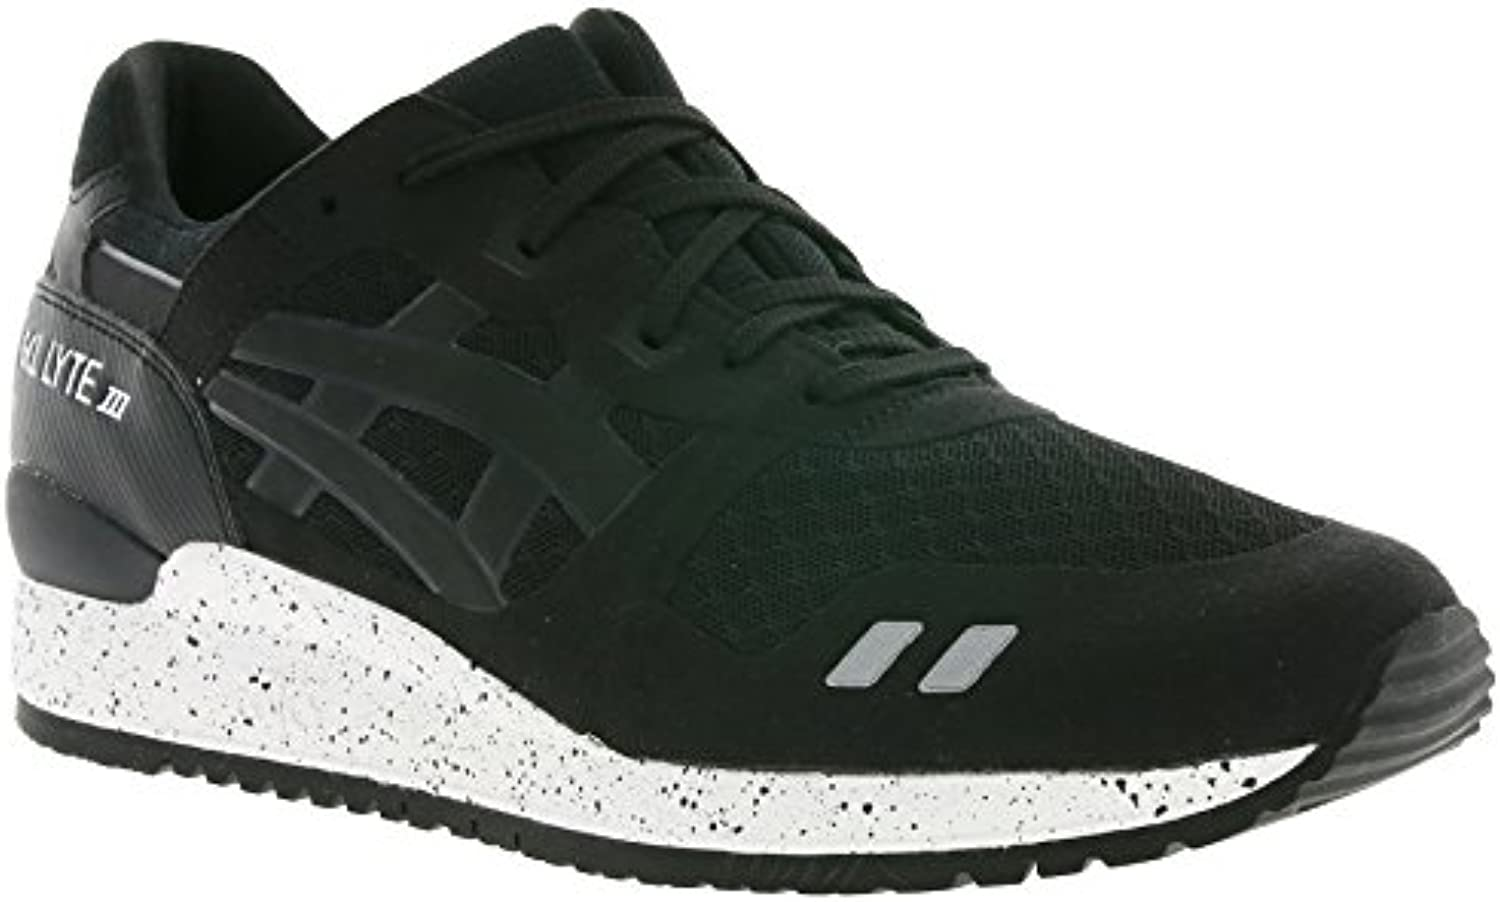 Asics Onitsuka Tiger Gel Lyte 3 III NS H5Y0N 9090 Sneaker Shoes Schuhe Mens